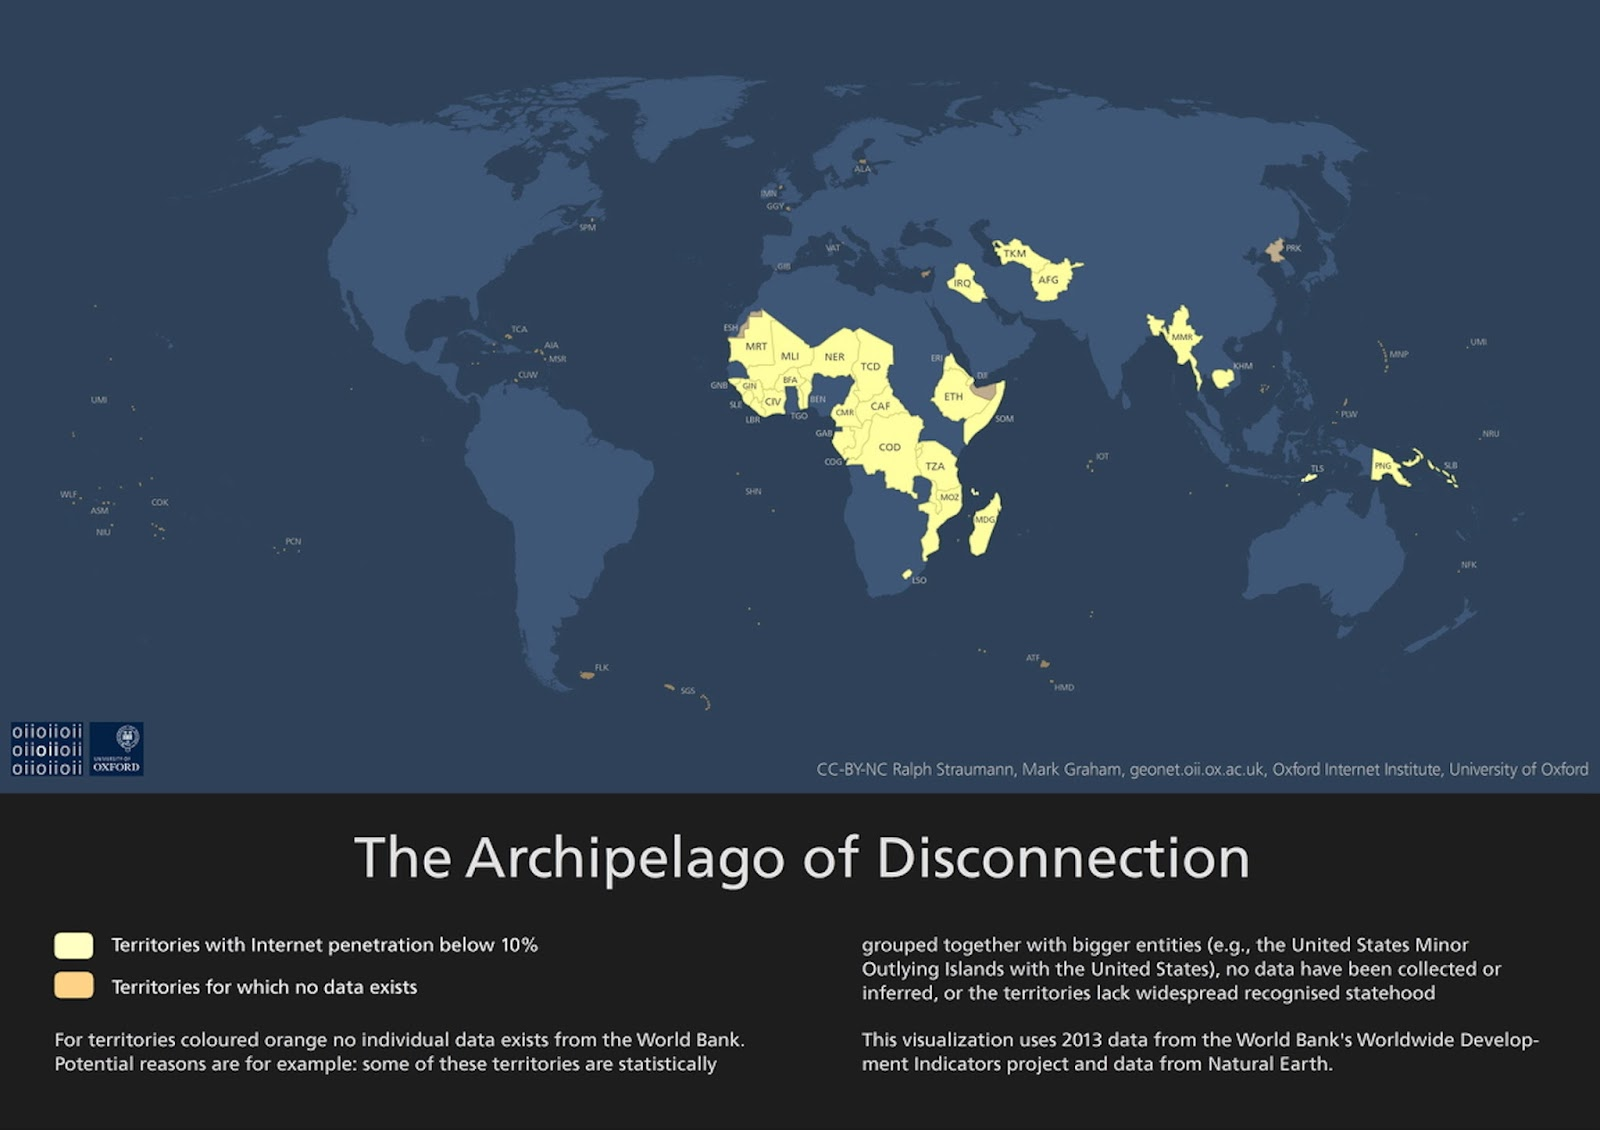 The 'Archipelago of Disconnection'